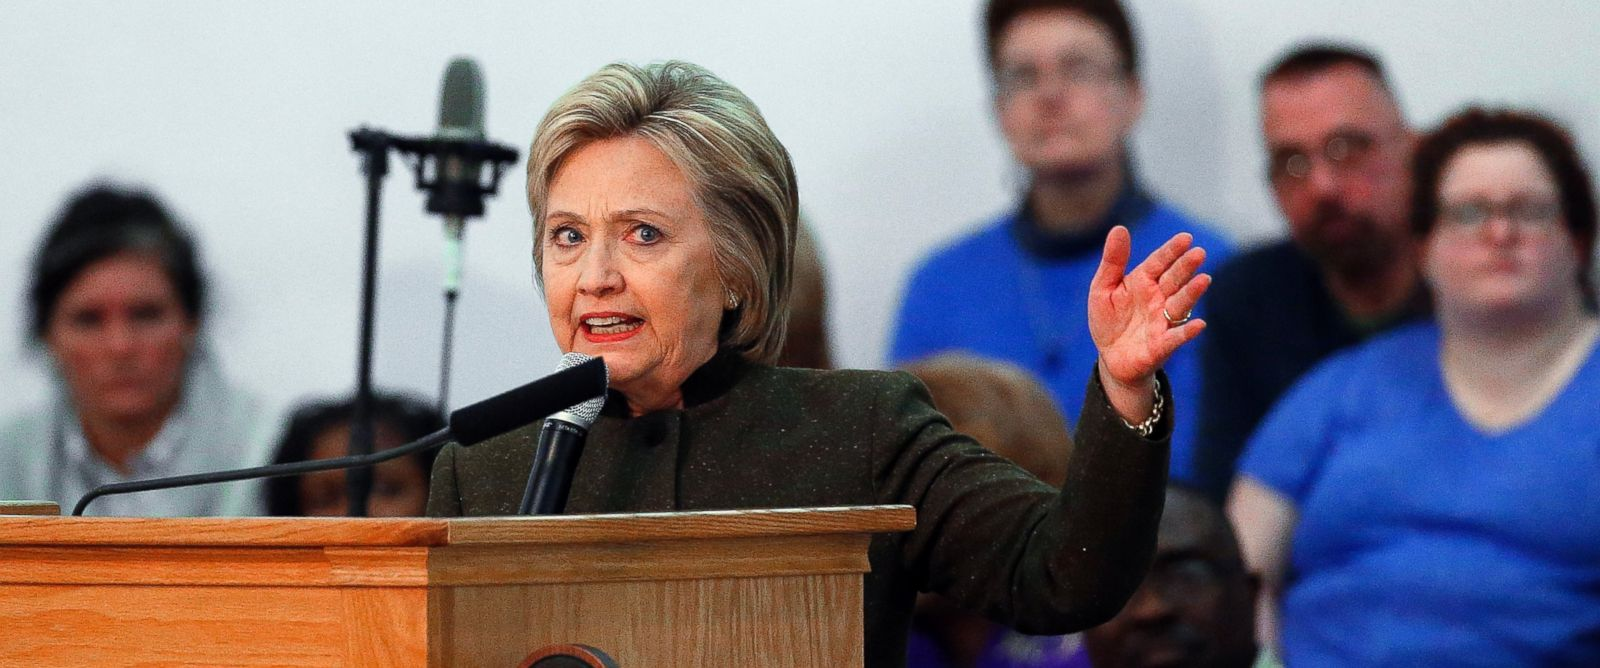 PHOTO: Democratic presidential candidate Hillary Clinton speaks at the House Of Prayer Missionary Baptist Church, Feb. 7, 2016 in Flint, Mich.